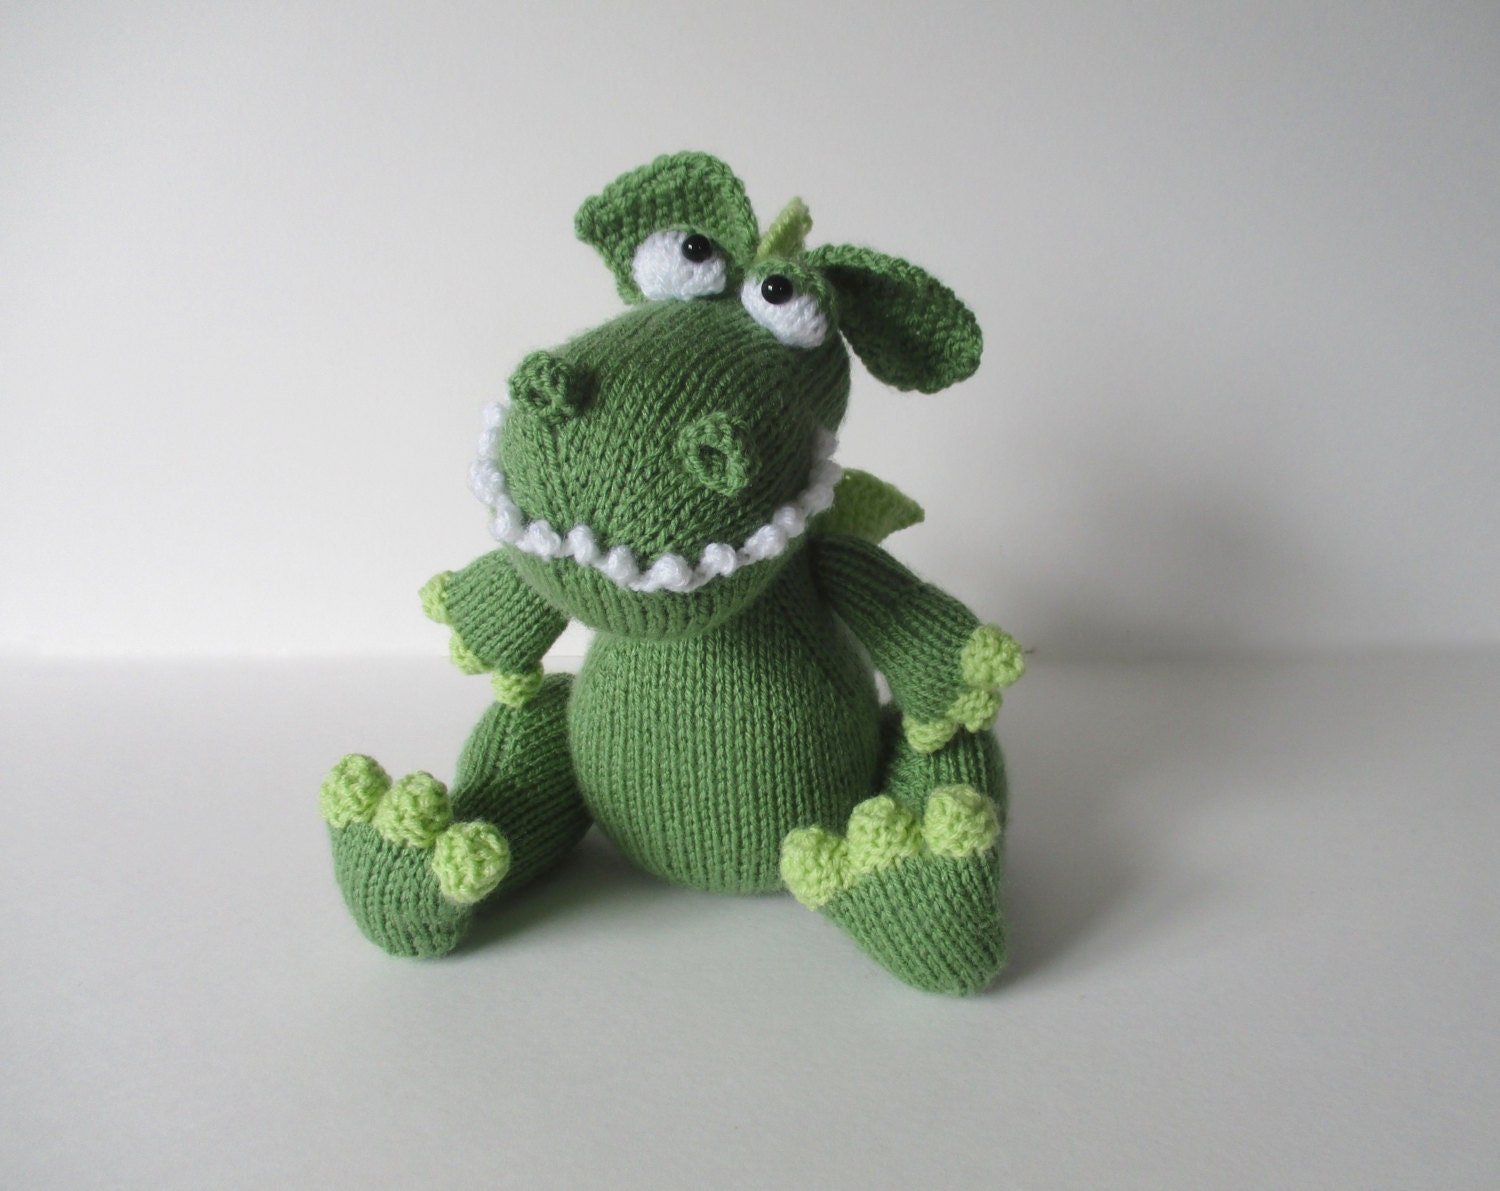 Knit Dragon Pattern : Griff the Dragon toy knitting pattern